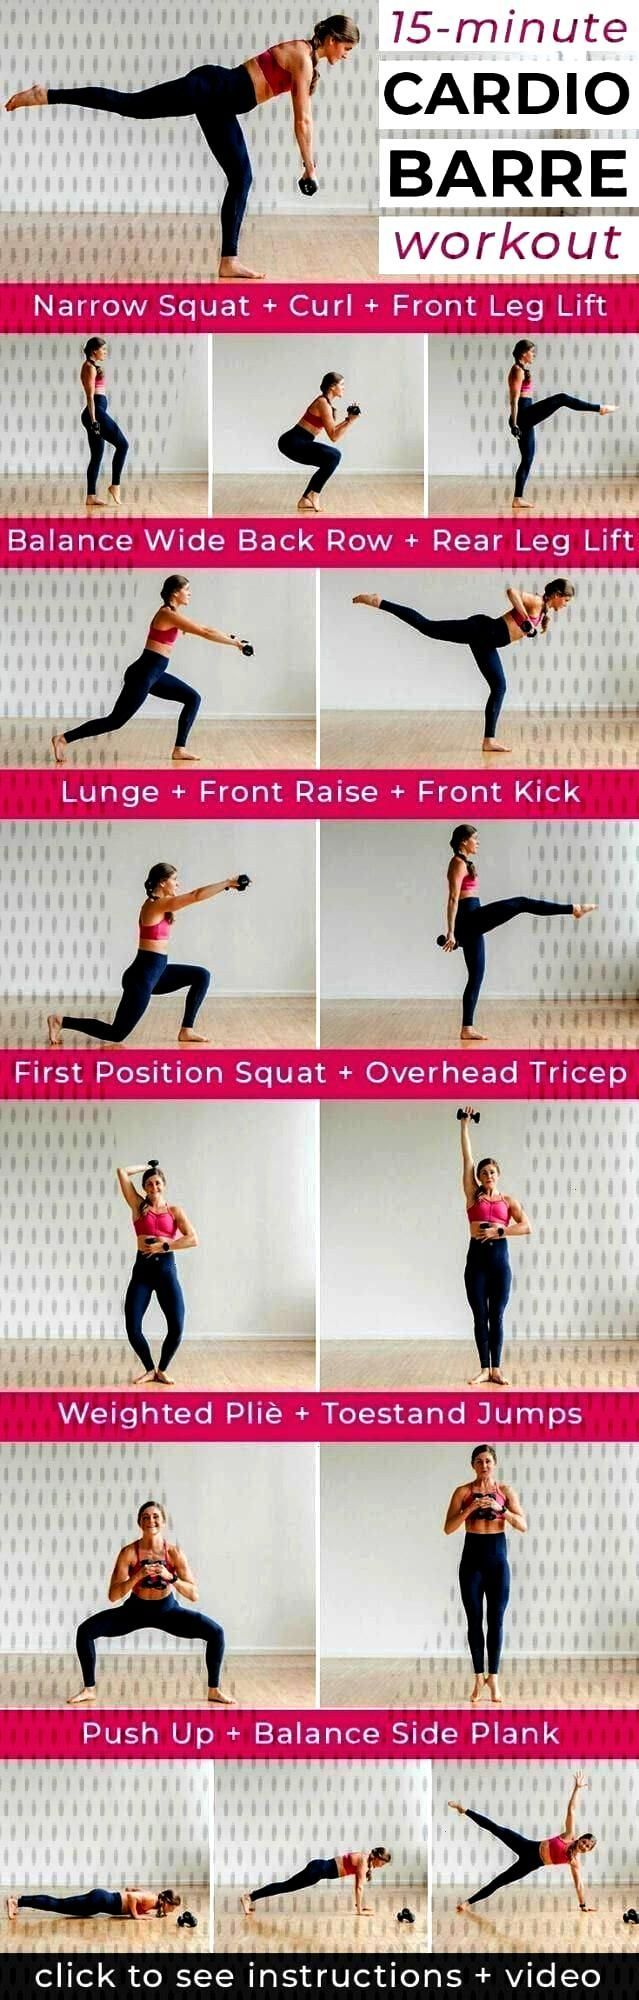 #athomeworkouts #barreworkouts #barreworkout #love15minute #at15minute #homebarre #workouts #15minute #nourish #workout #cardio #loveba #minute #barre #move Workout: Cardio Barre At Home 15-Minute Barre Workout: Cardio Barre At Home | barre | barre workoutWorkout: Cardio Barre At Home 15-Minute Barre Workout: Cardio Barre At Home | barre | barre workout | 15 minute workouts | cardio barre workout | at home workouts Workout: Cardio Barre At Home 15-Minute Barre Workout: Cardio Barre At Hom... #ca #cardiobarre